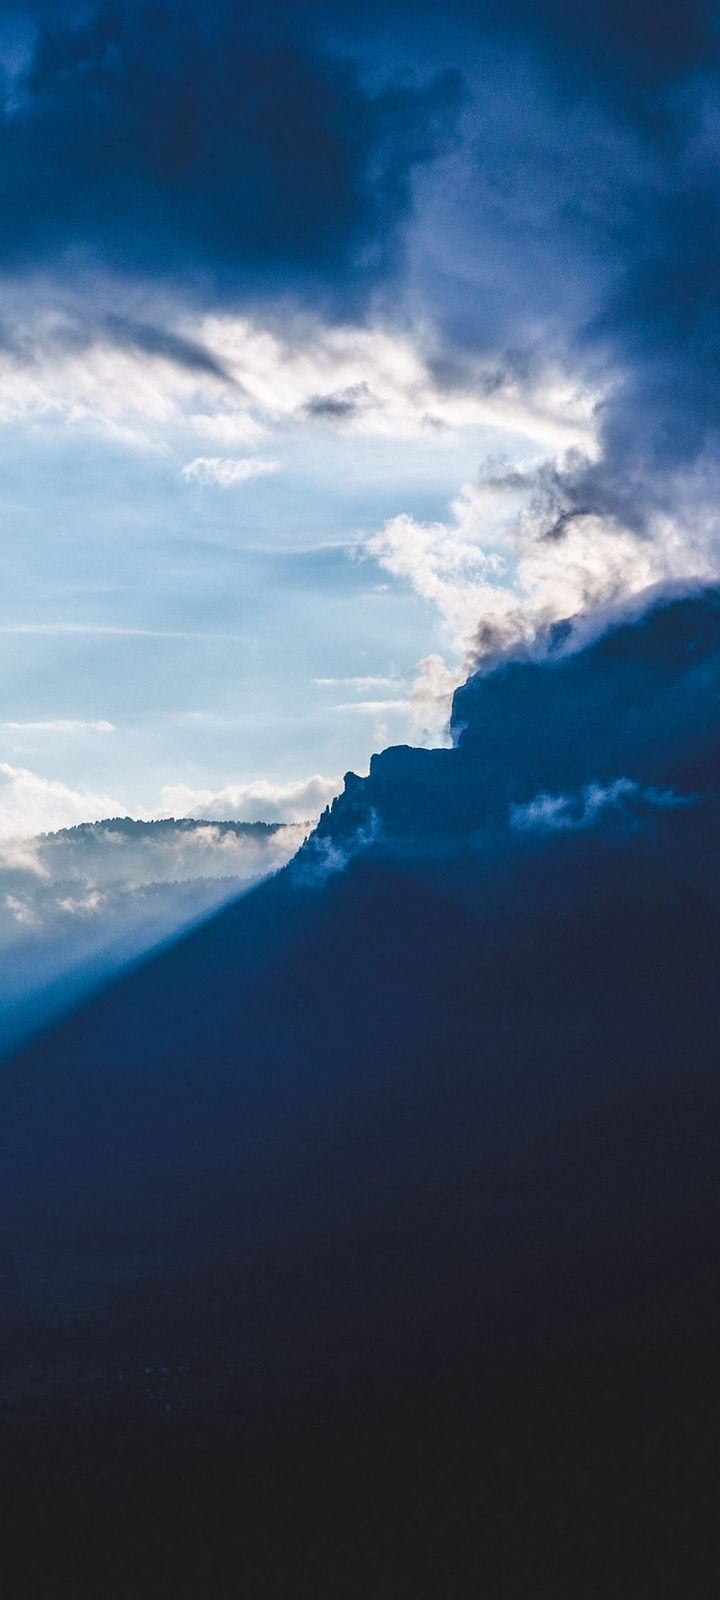 Mountains Clouds Rays Wallpaper 720x1600